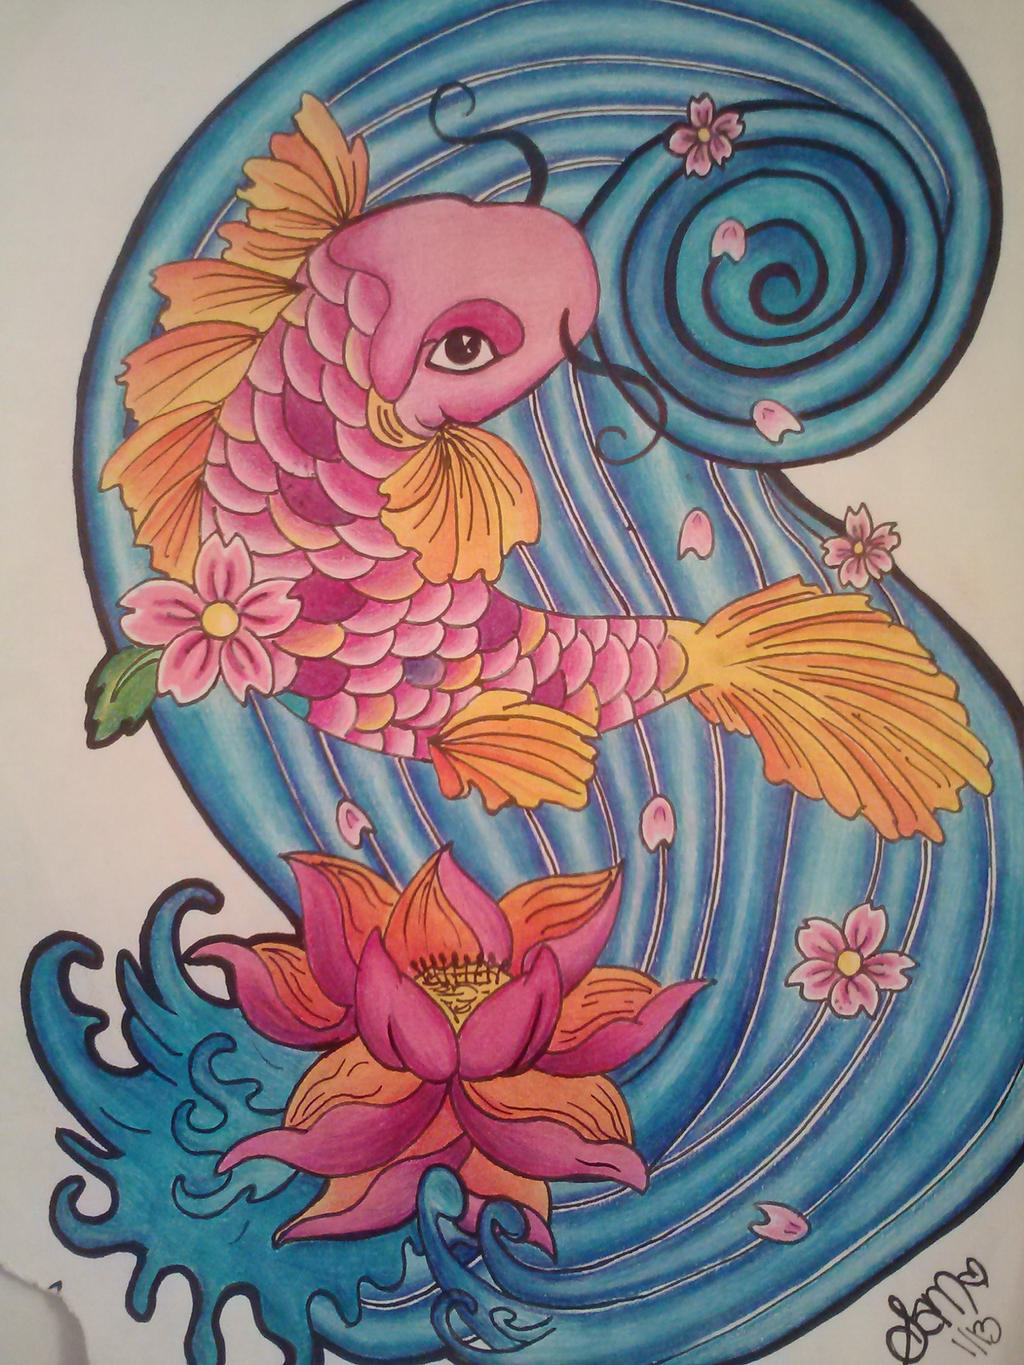 Koi Fish And Lotus Flower By Samanthalyn1 On Deviantart